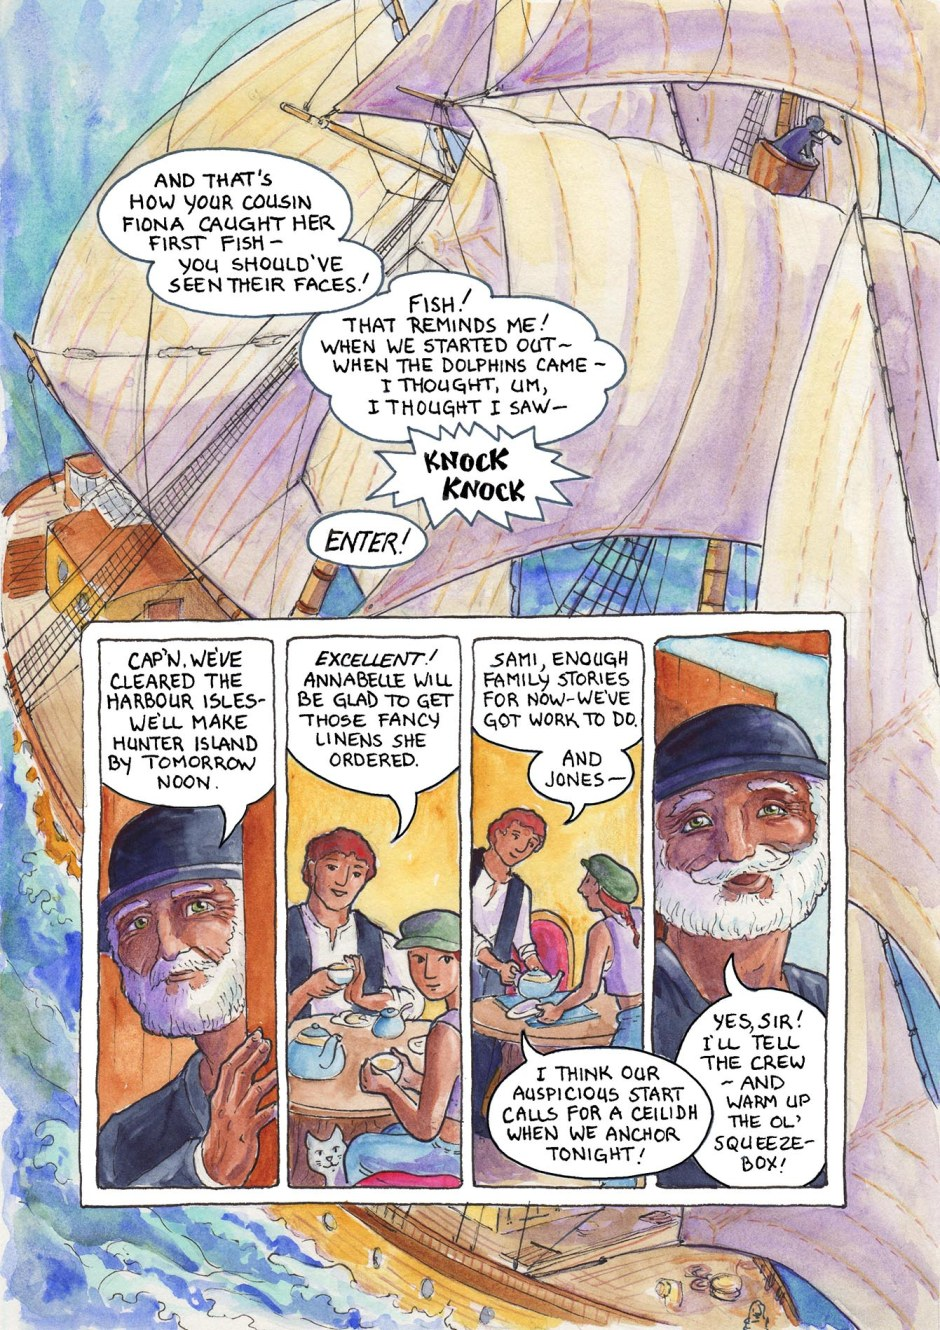 Page 56 — Sami's first day at sea, and already a party — this sailing stuff might not be so bad after all!